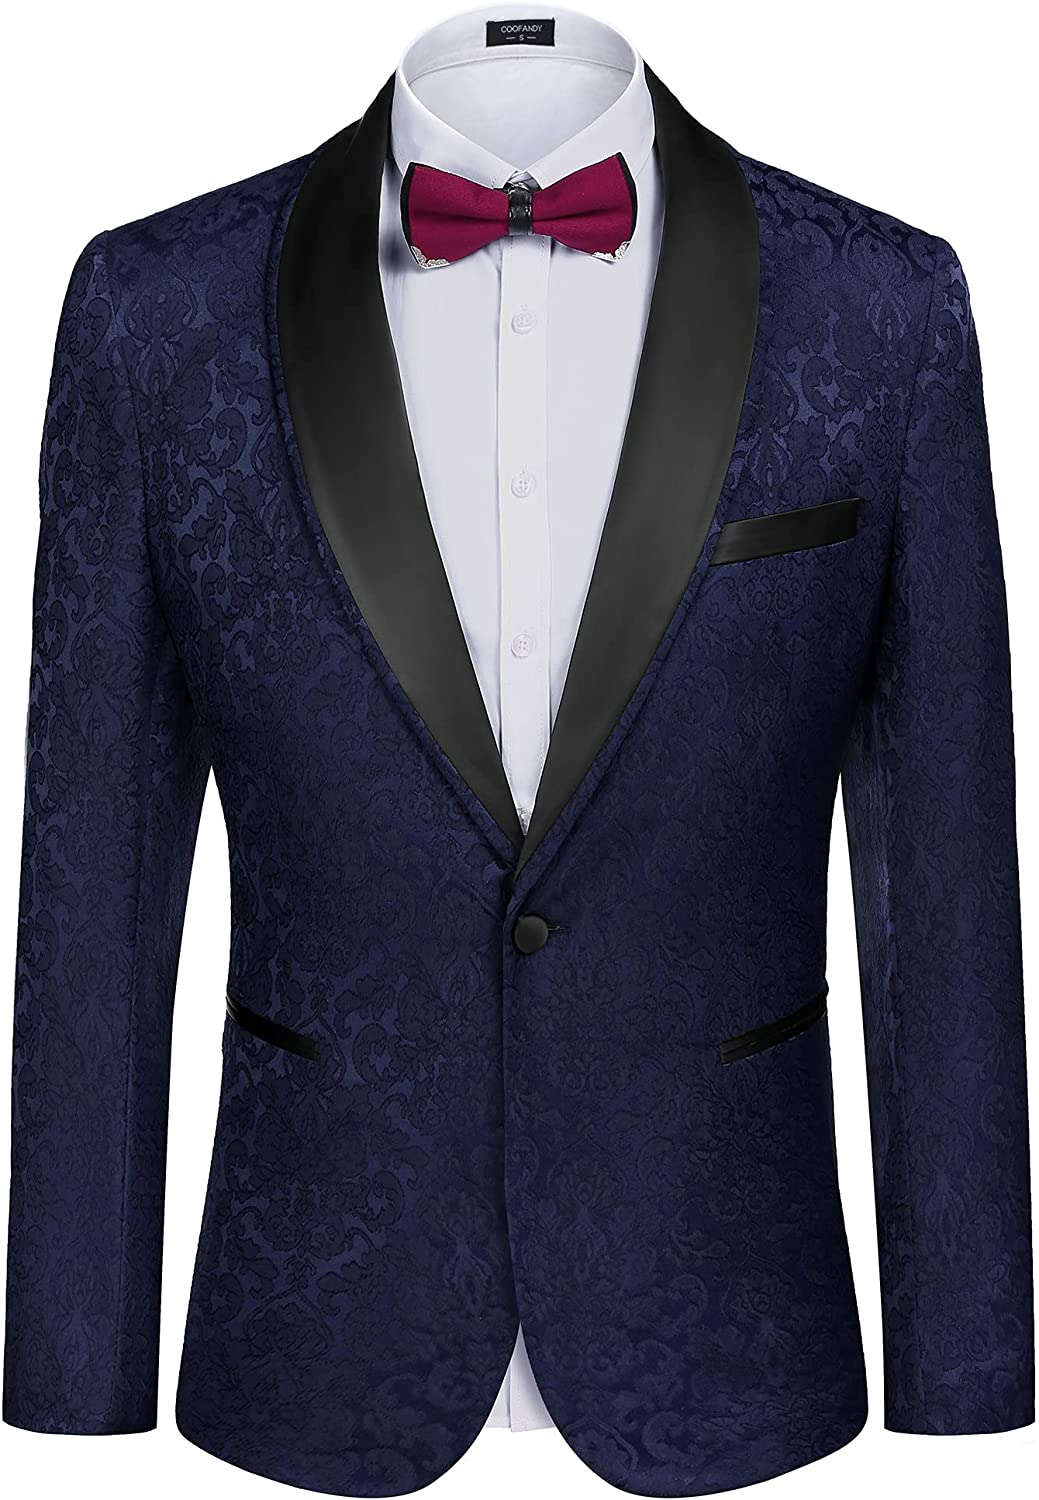 COOFANDY Men's Floral Tuxedo Free Shipping New Suit Jacket New Shipping Free Slim Fit Dinner